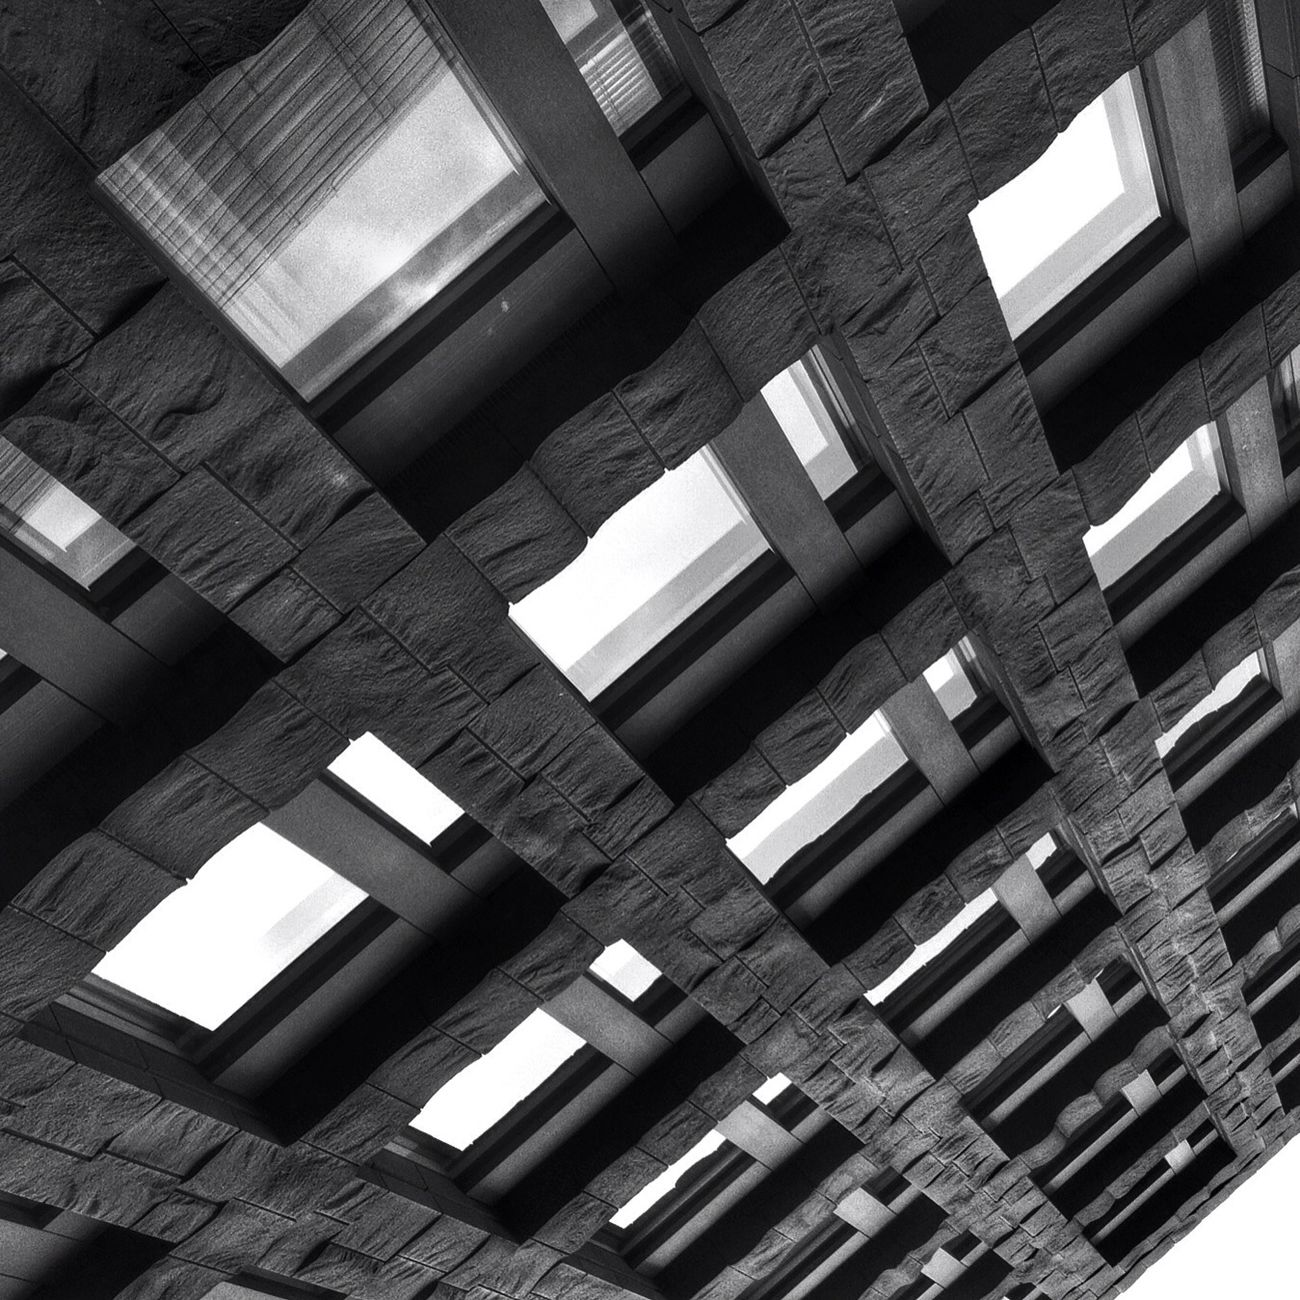 AMPt - Vanishing Point Architecture Perpective Blackandwhite